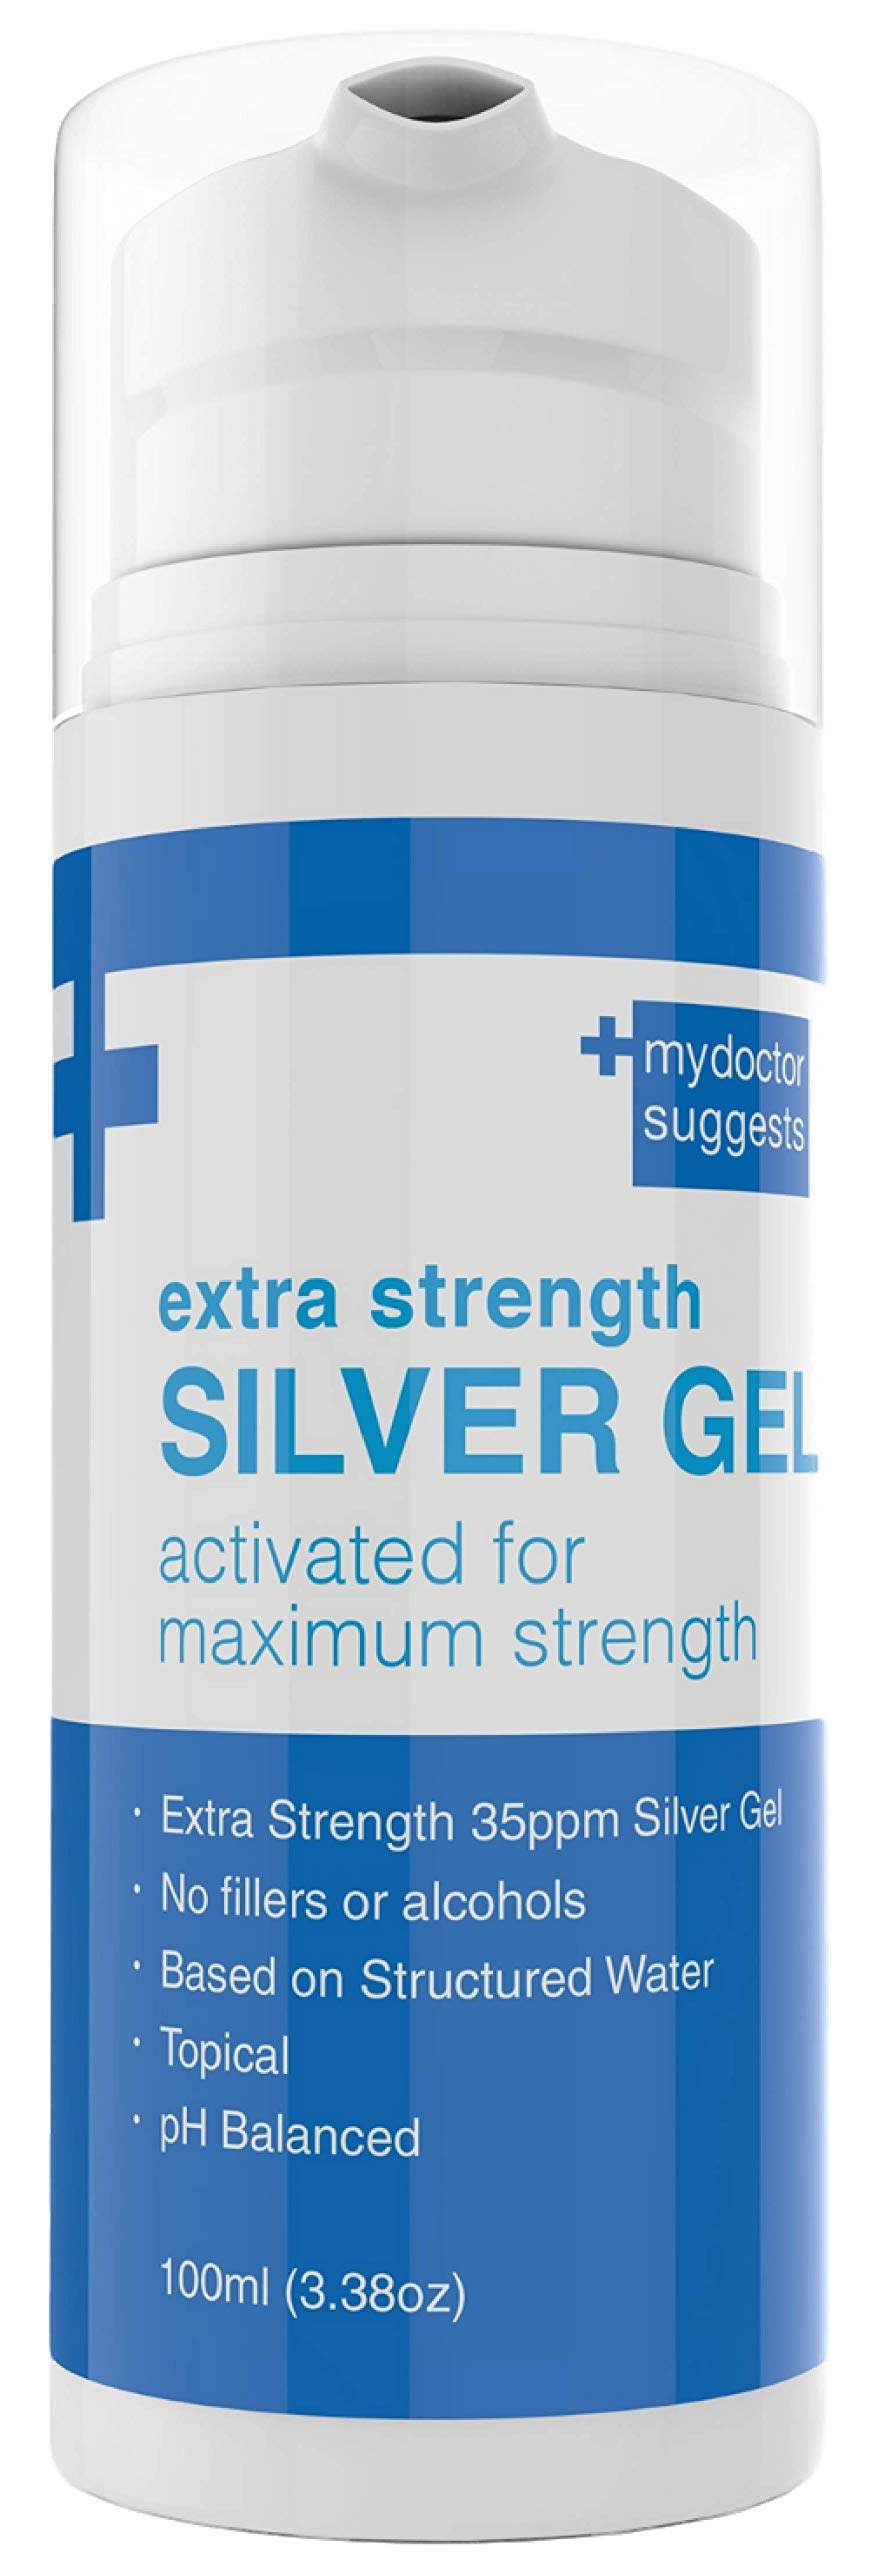 Silver Gel Extra Strong- 35ppm Advanced Silver Gel